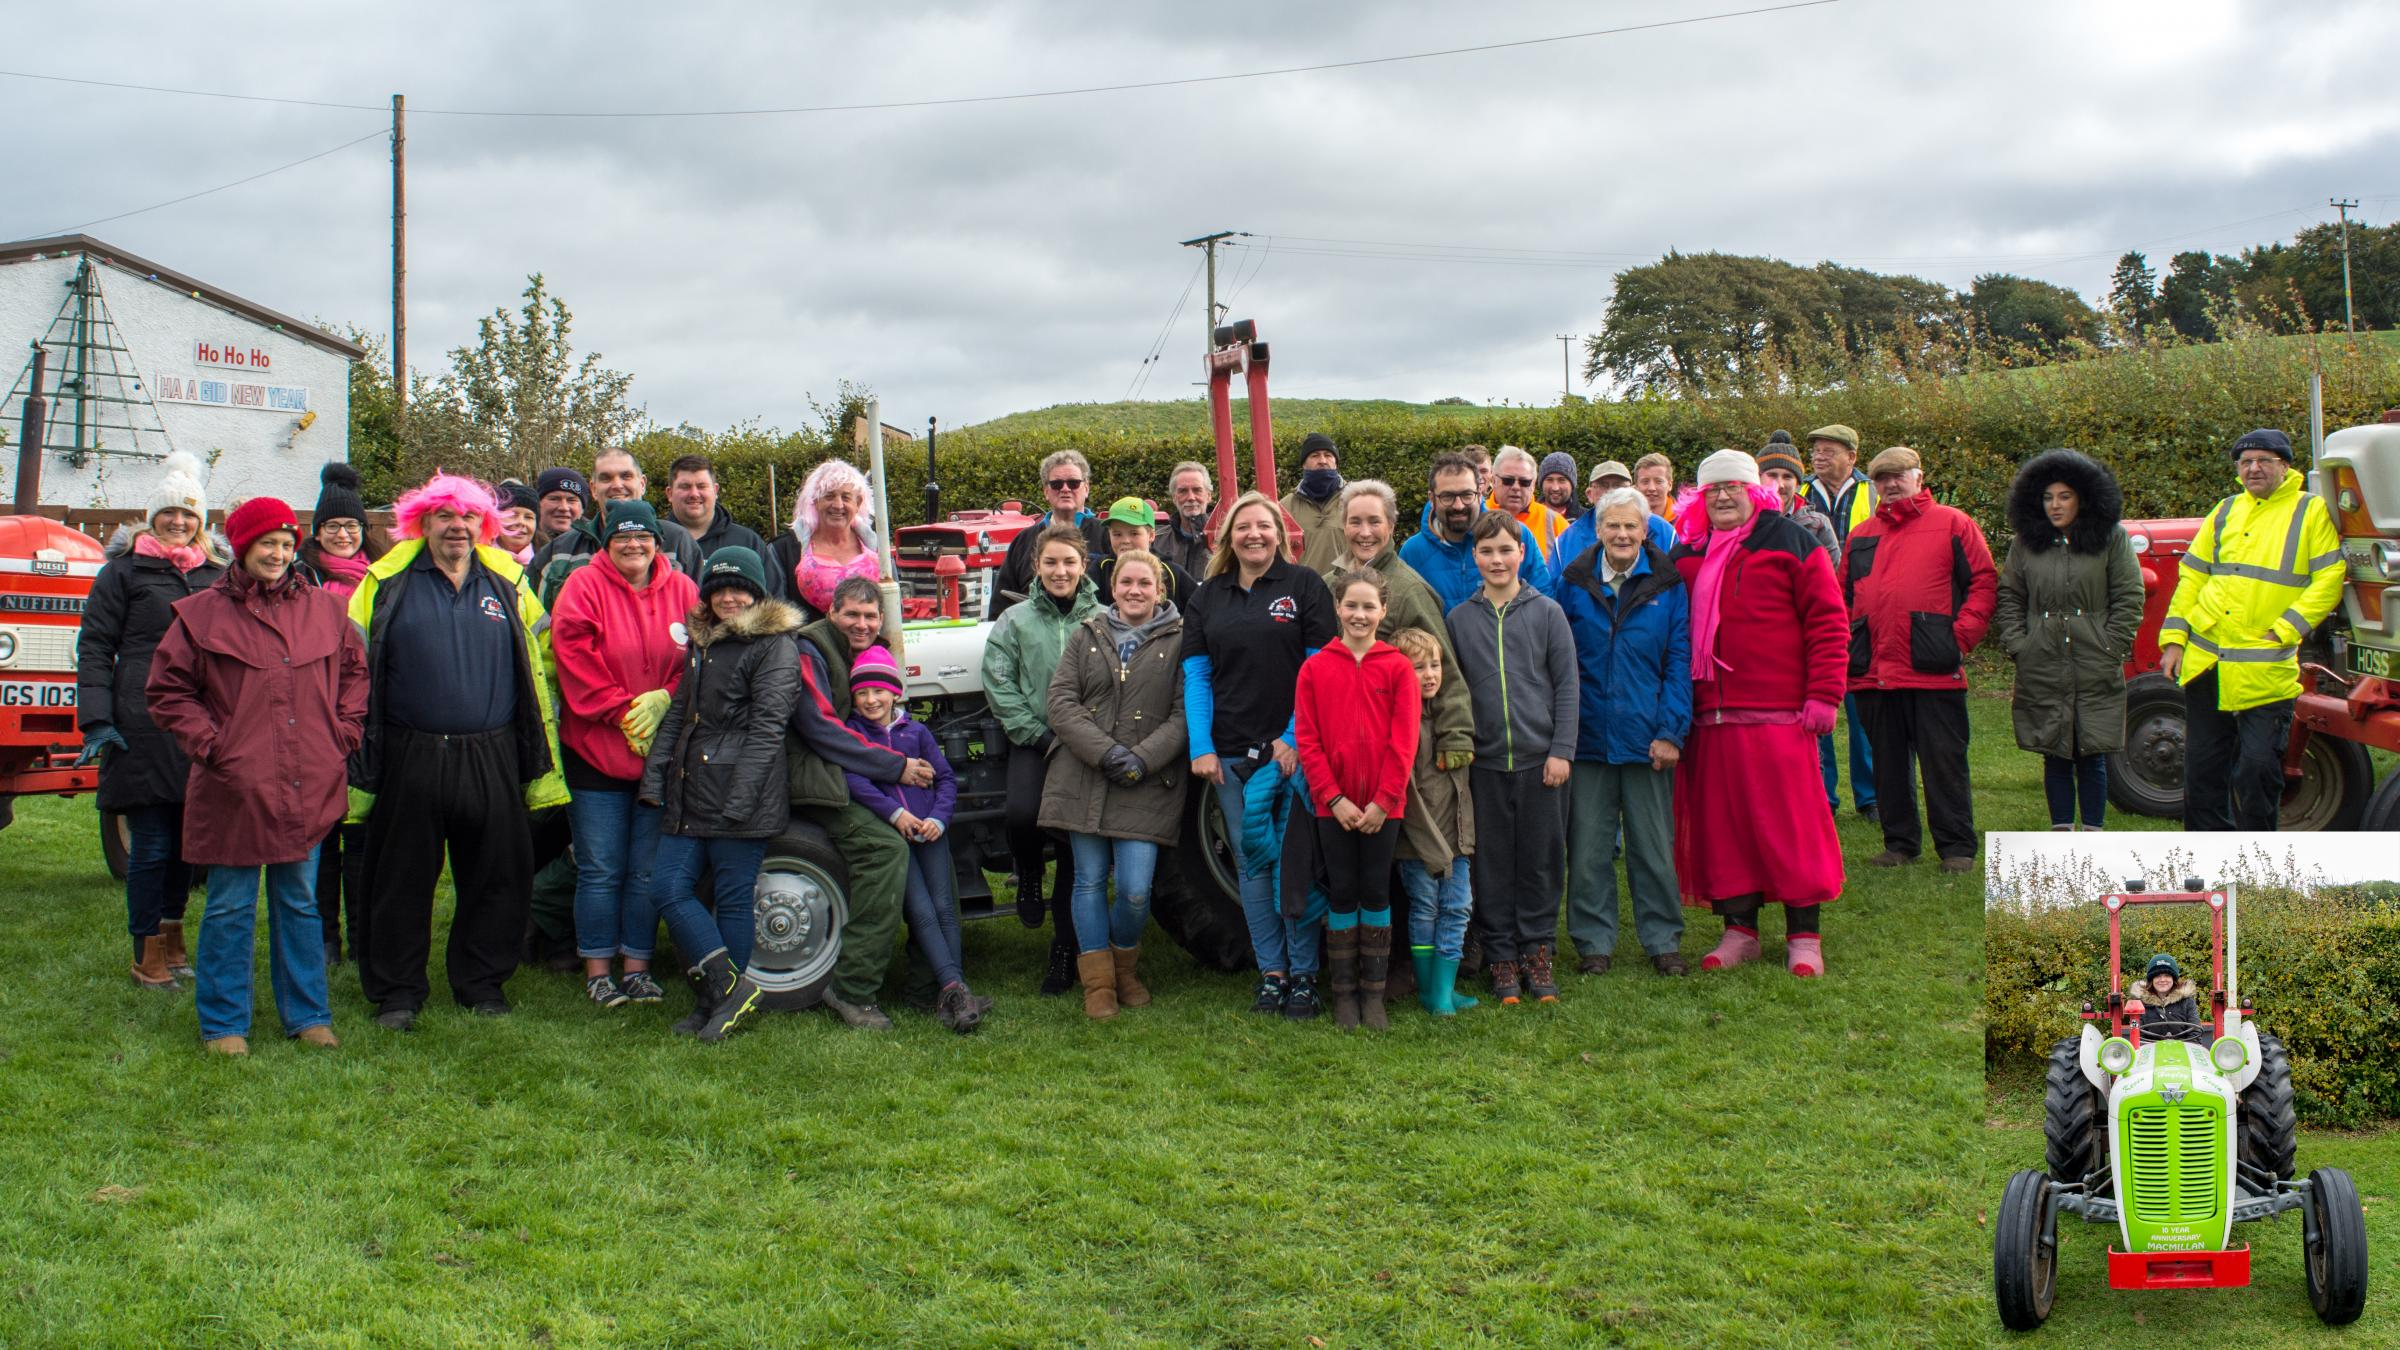 The Tractor Run on September 29 in aid of Breast Cancer Now Scotland and Macmillan Cancer Support